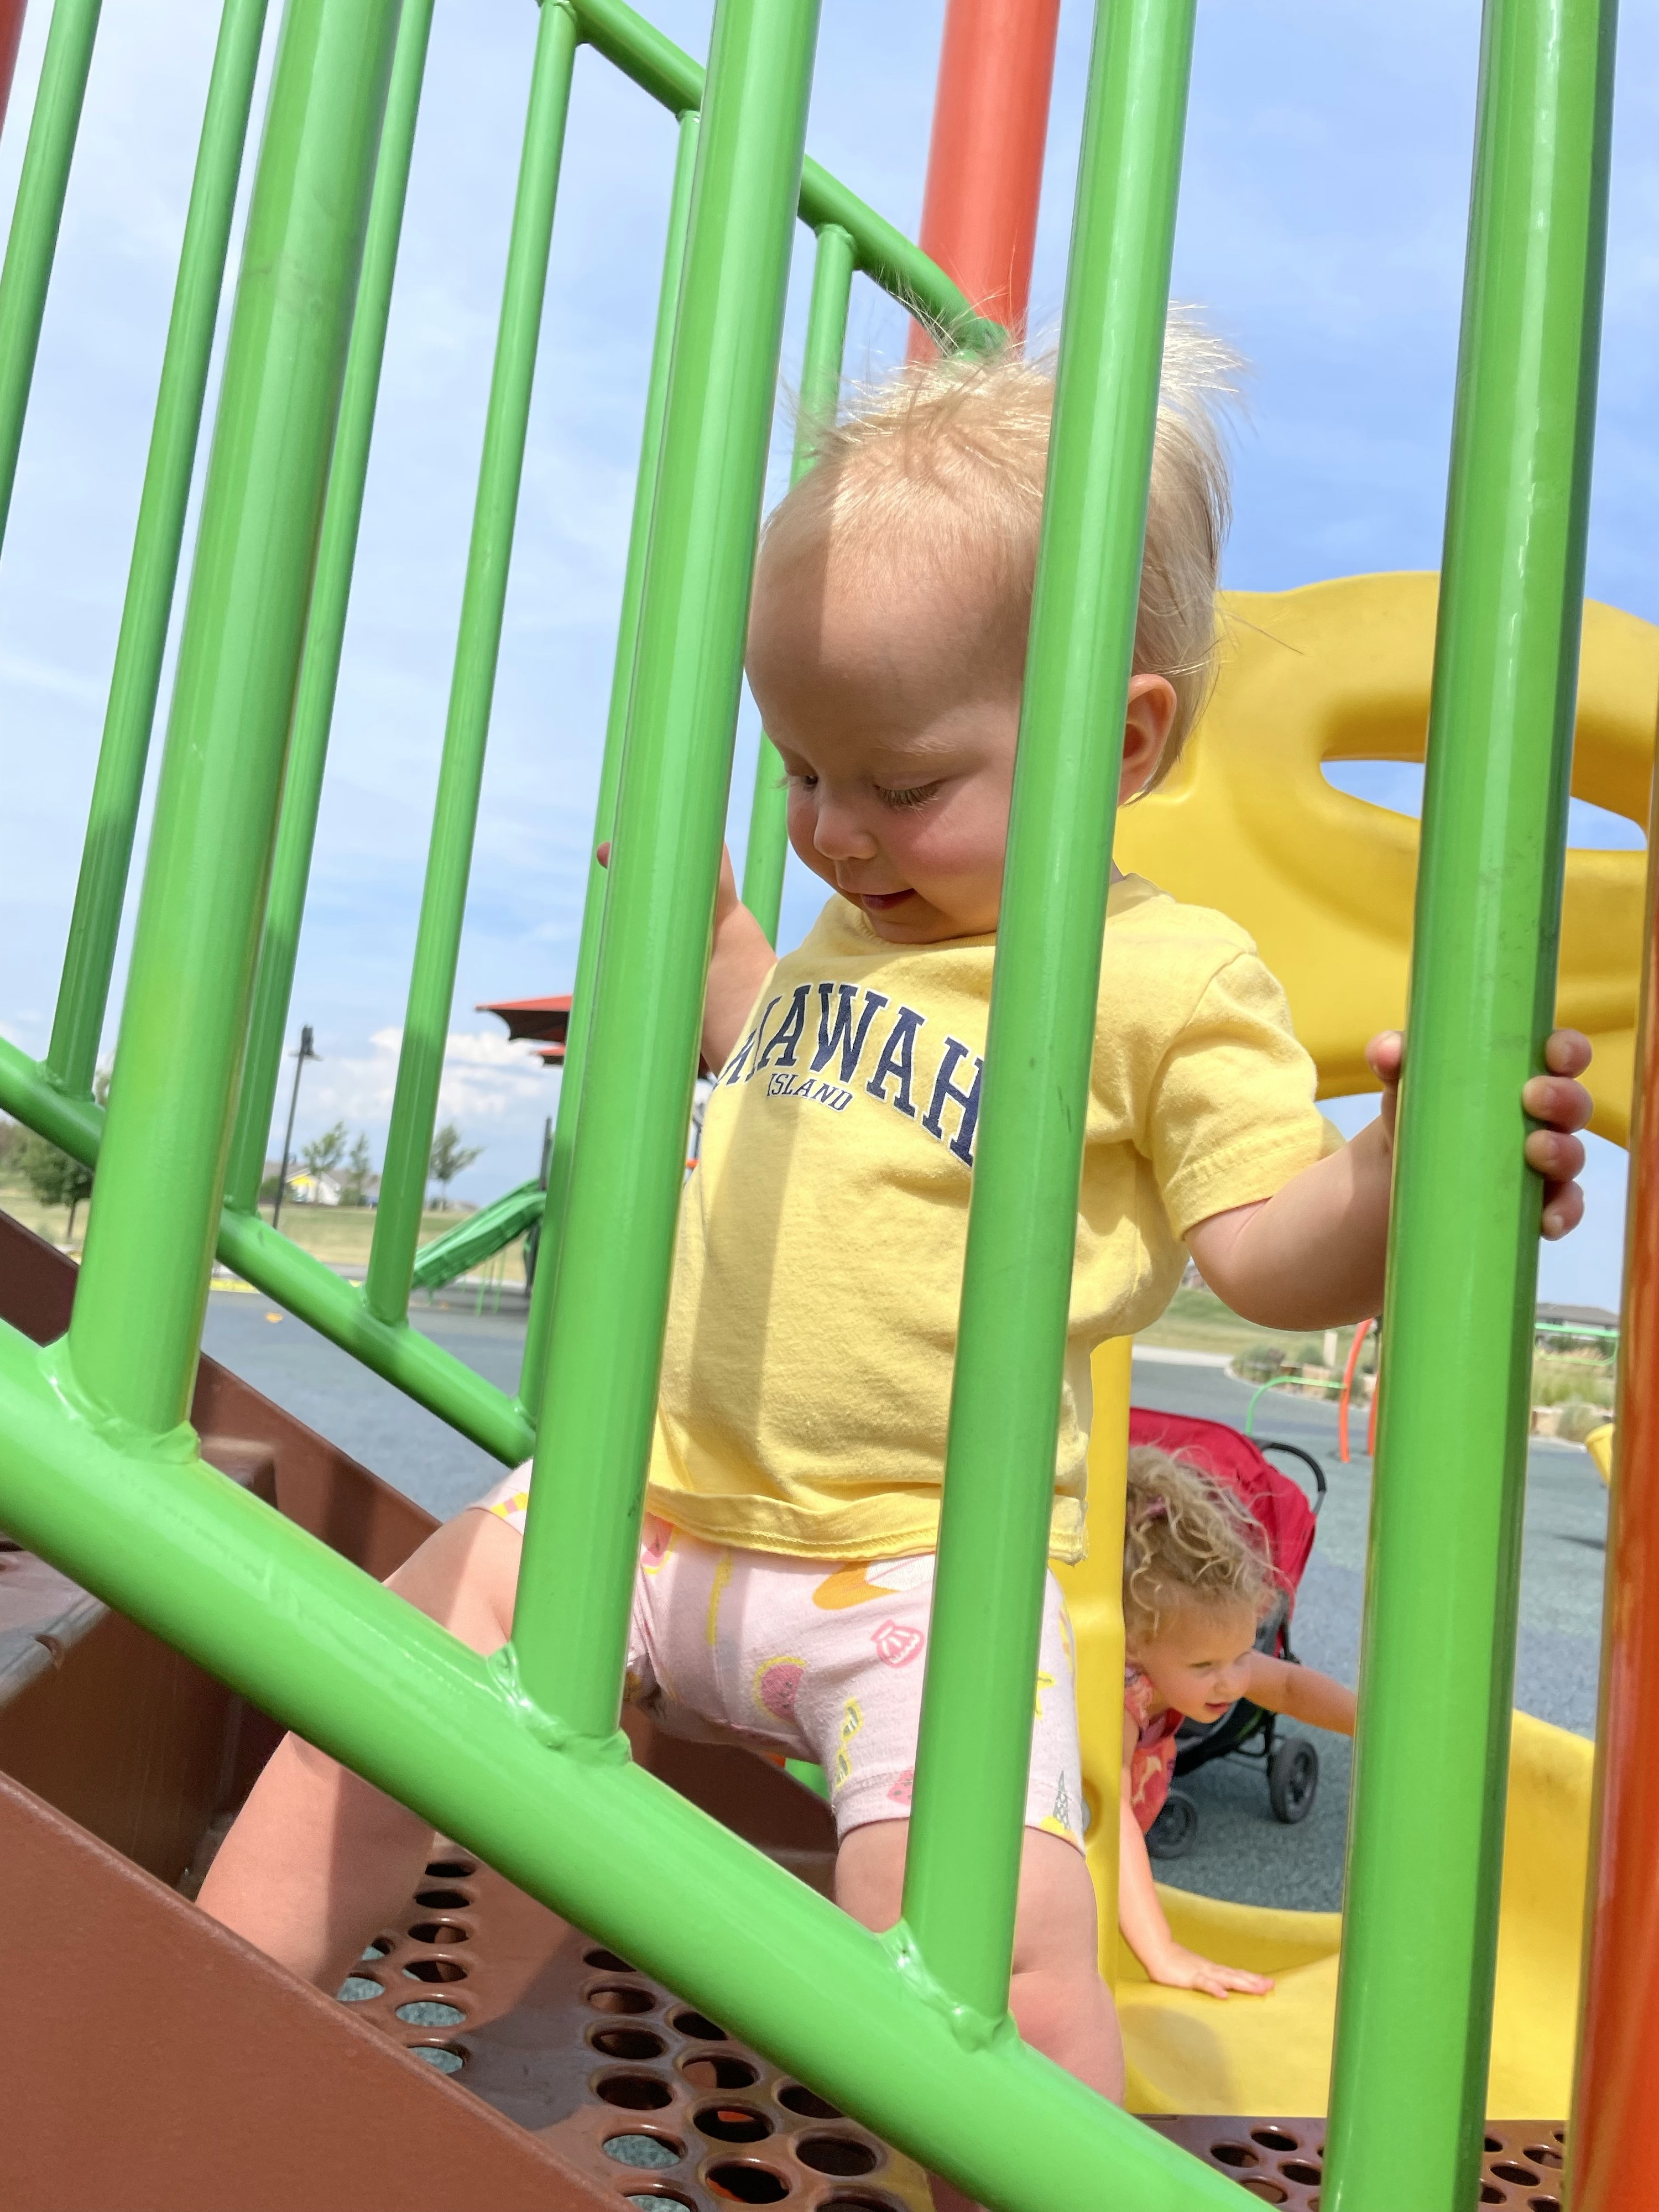 The author's daughter playing at the park